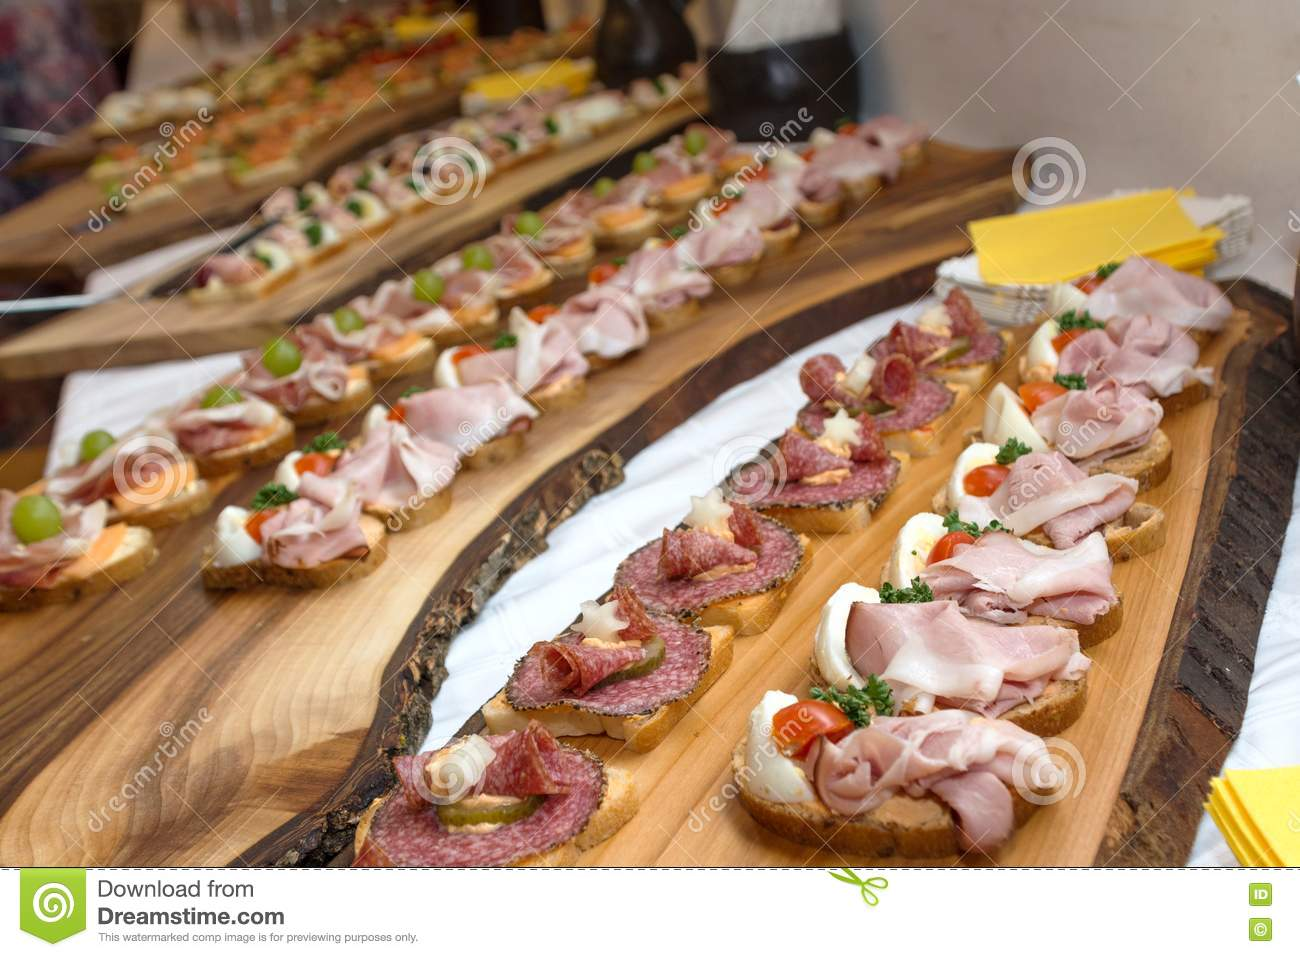 Download Rustic Cold Buffet On Wooden Board Stock Photo